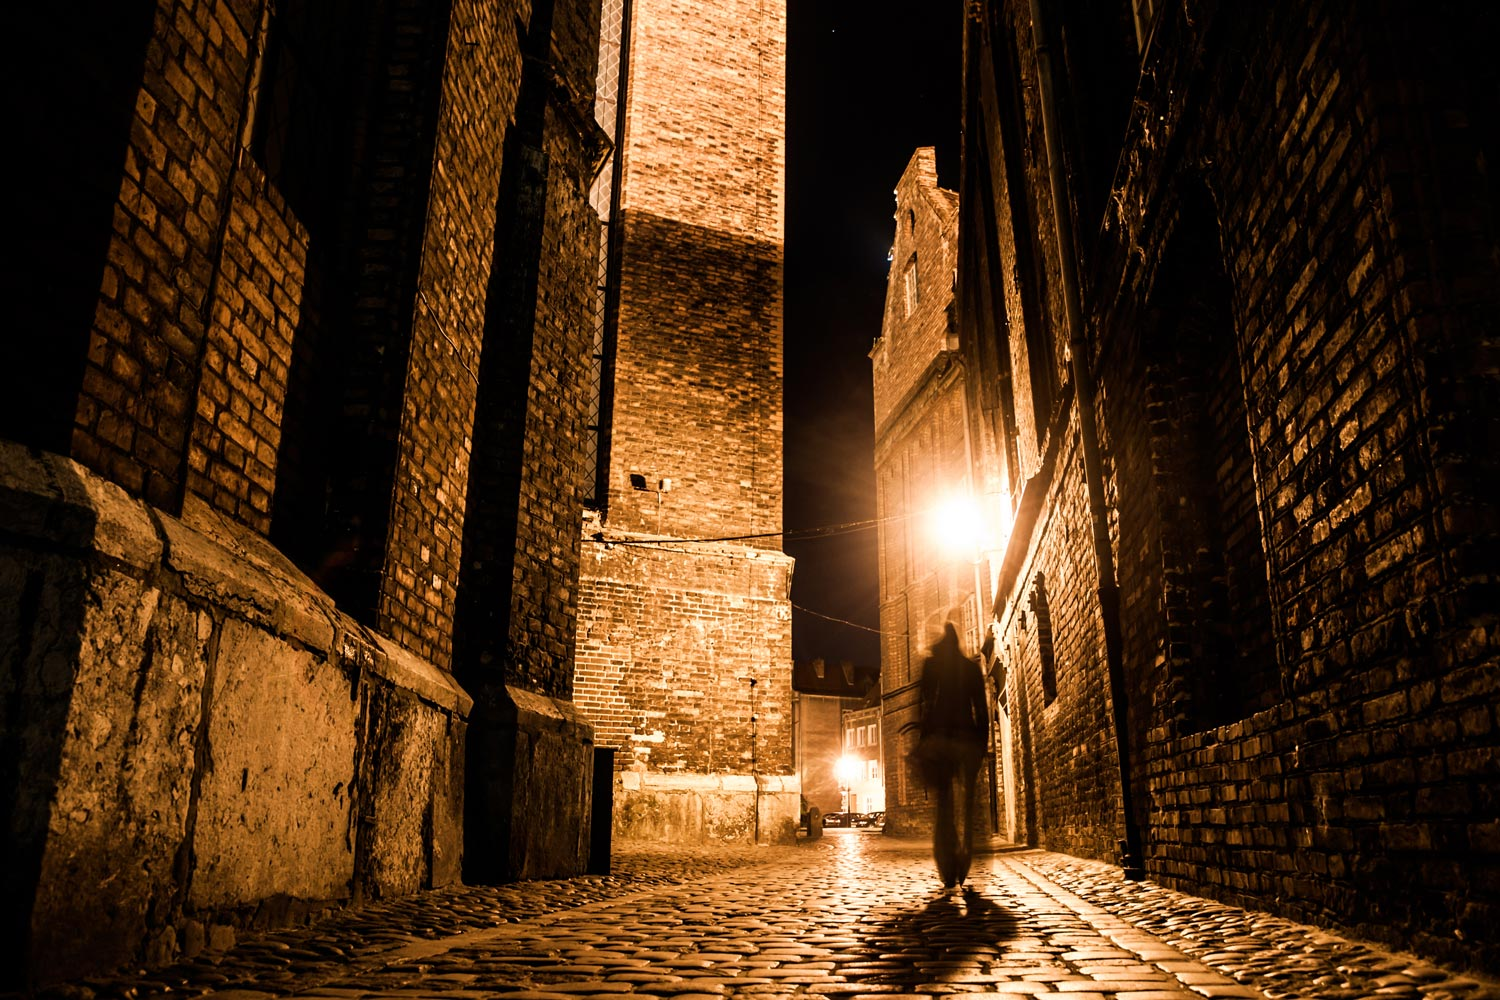 Illuminated cobbled street with light reflections